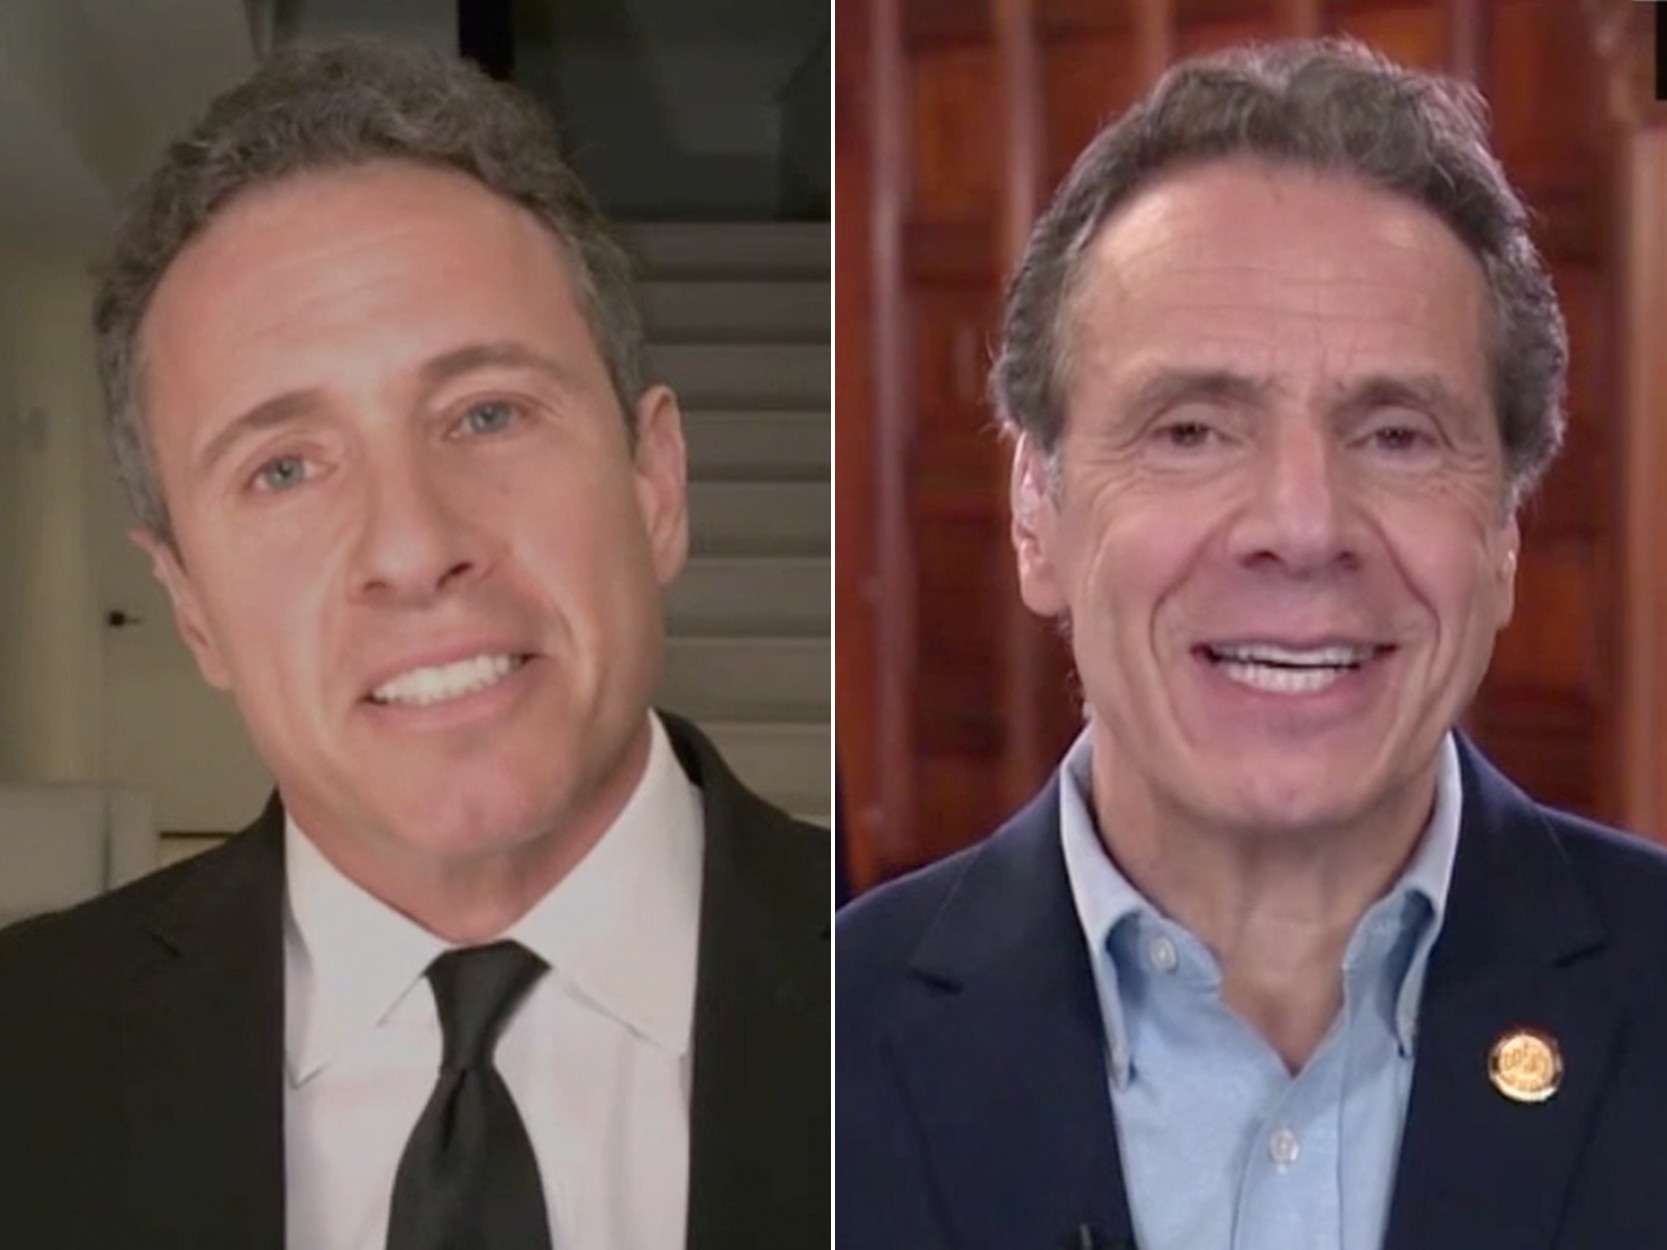 'The answer is no': Gov. Cuomo responds to questions about White House run spurred by pandemic leadership